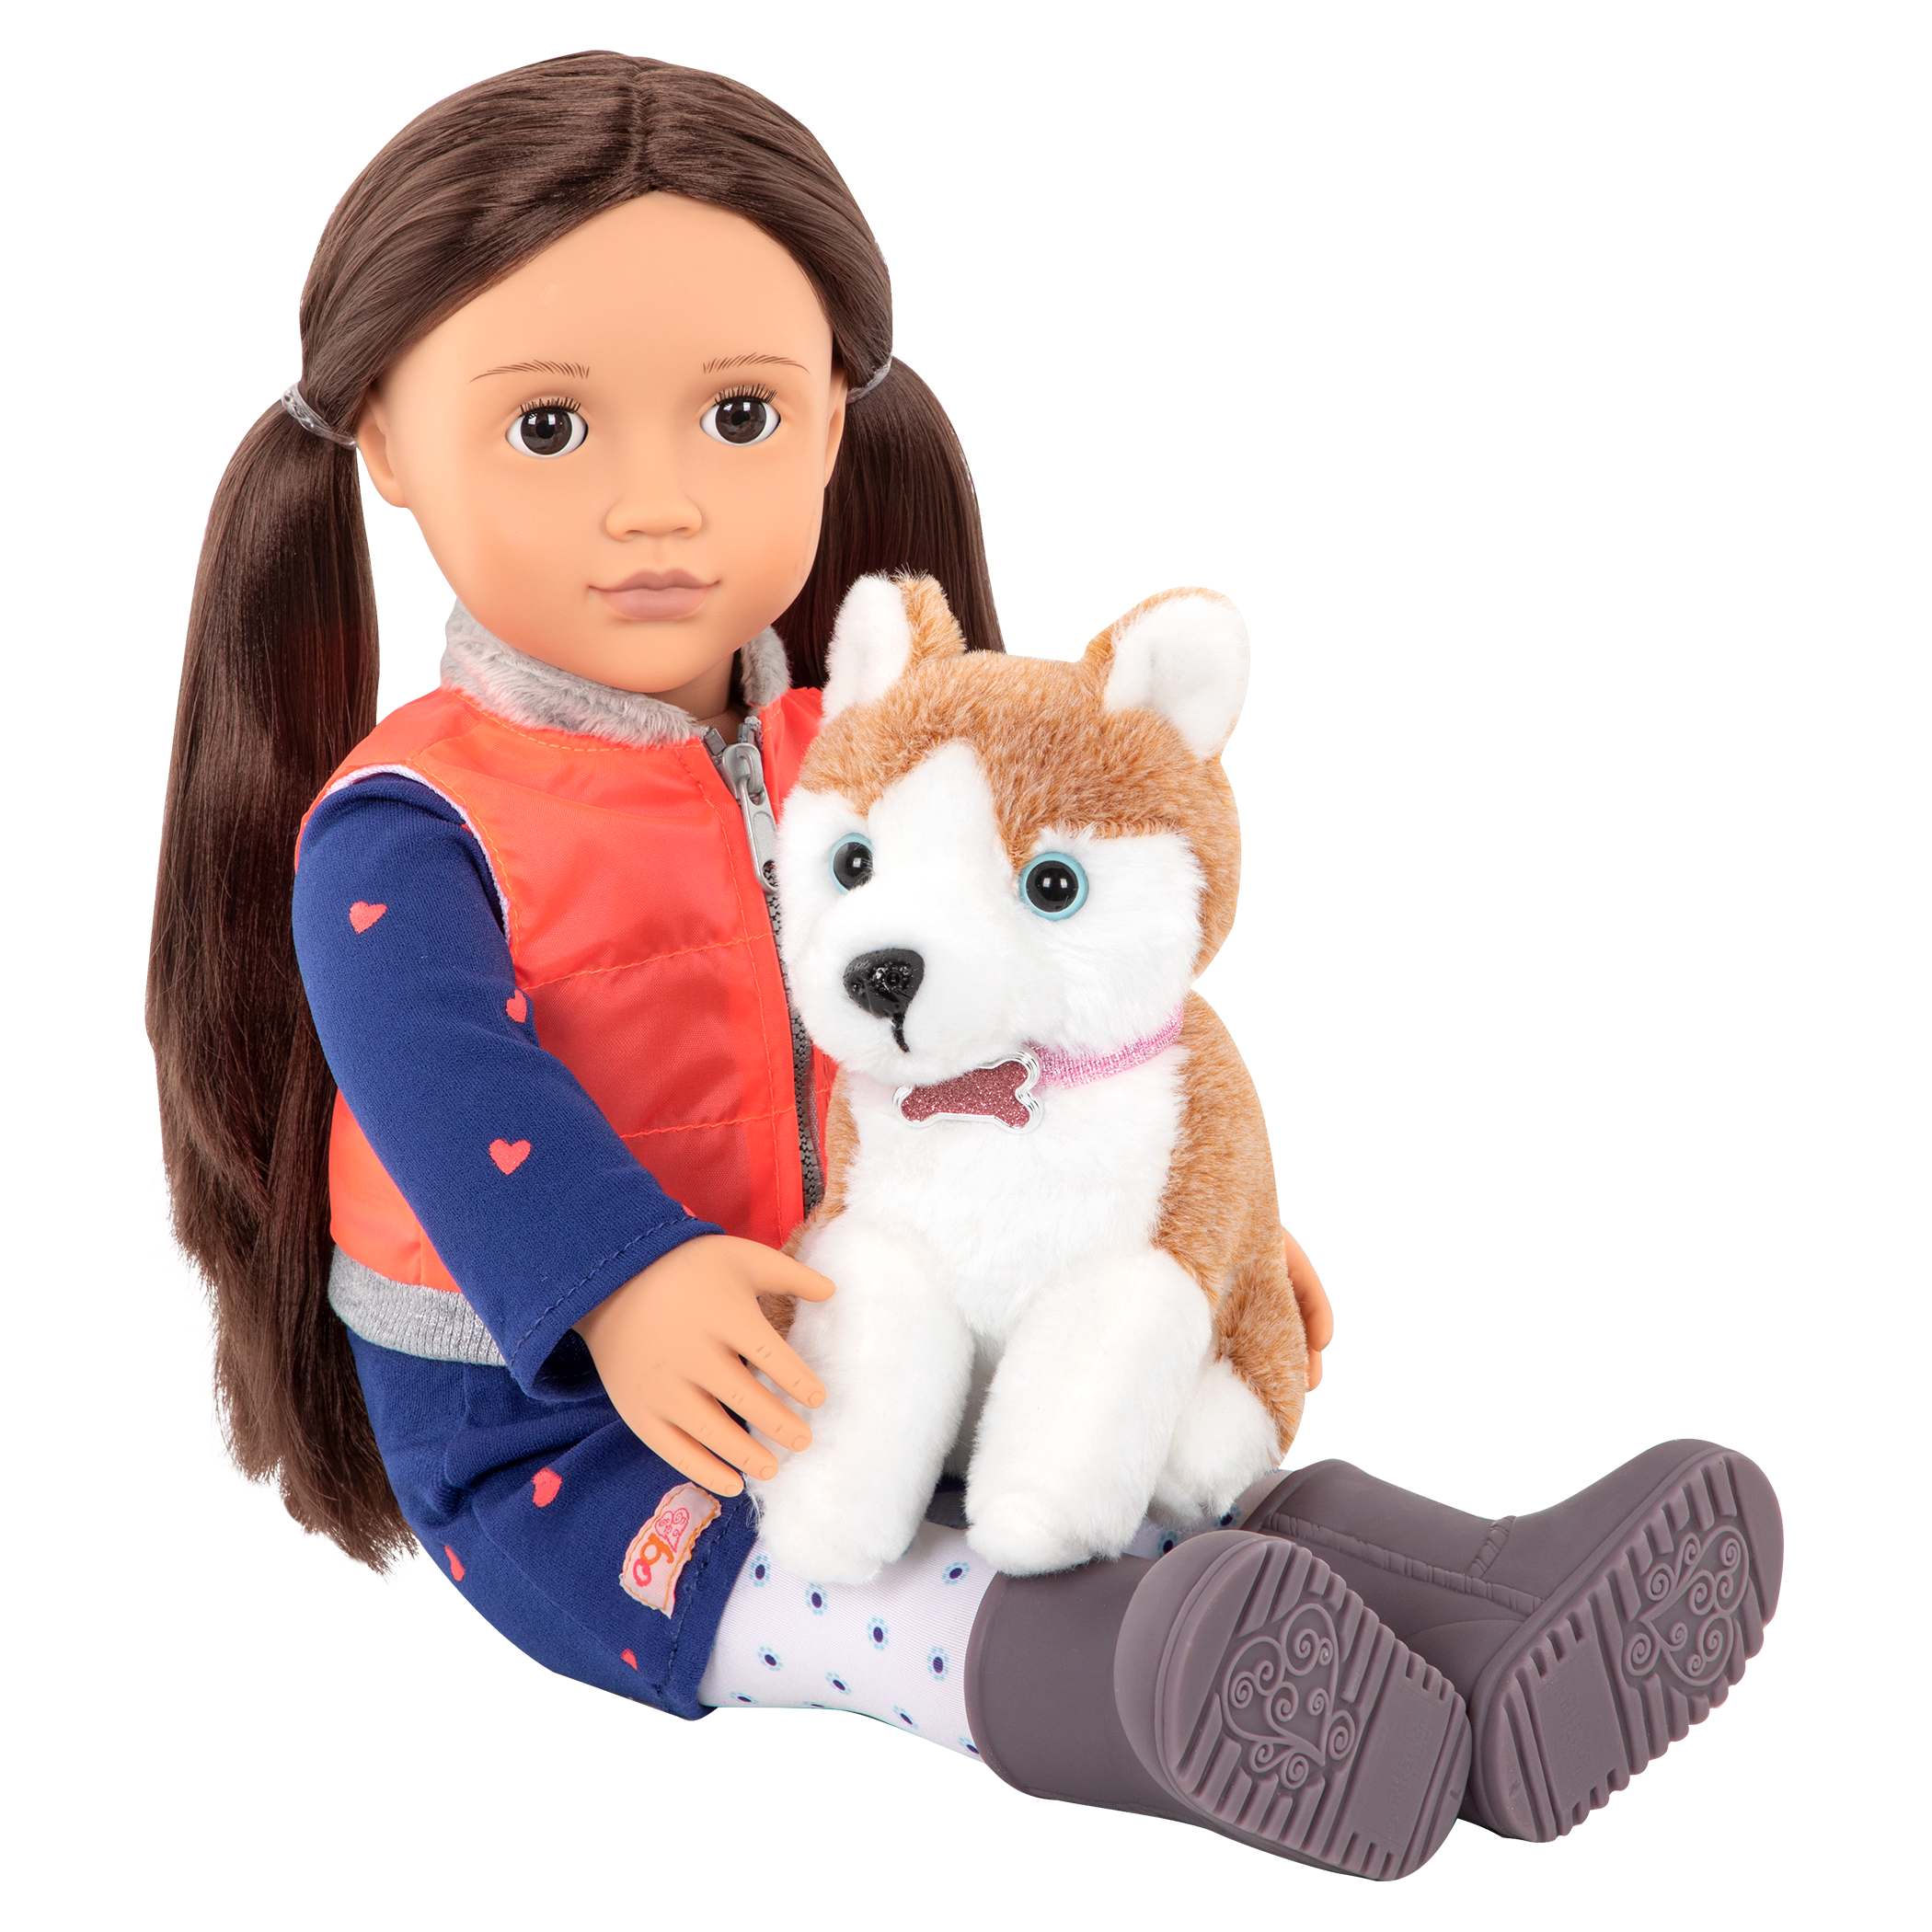 Leslie sitting with Husky in her lap